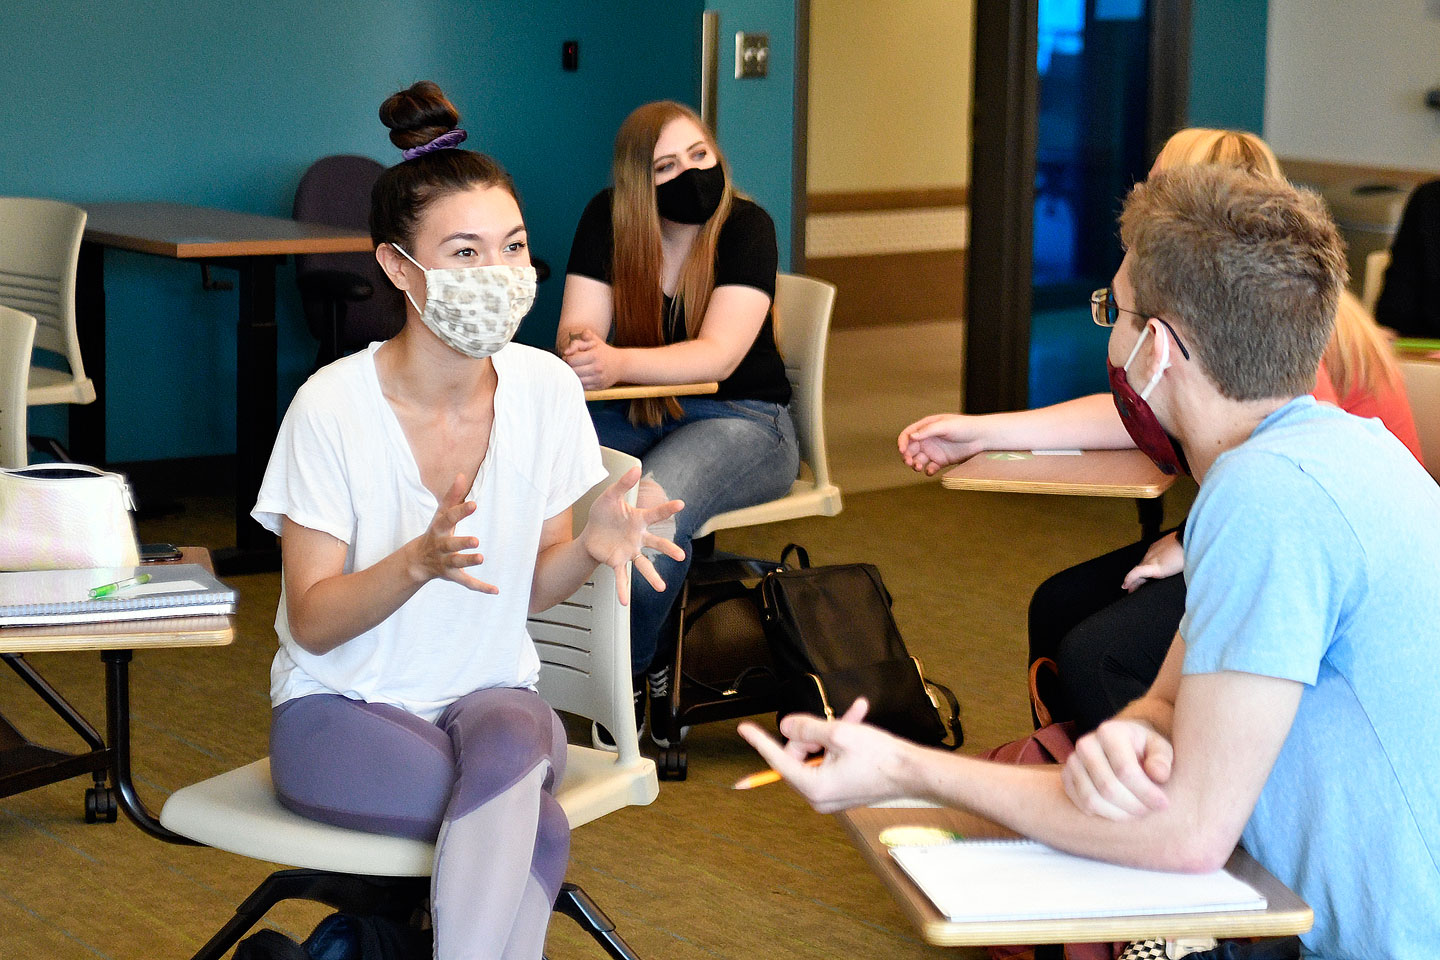 Students talking while wearing masks